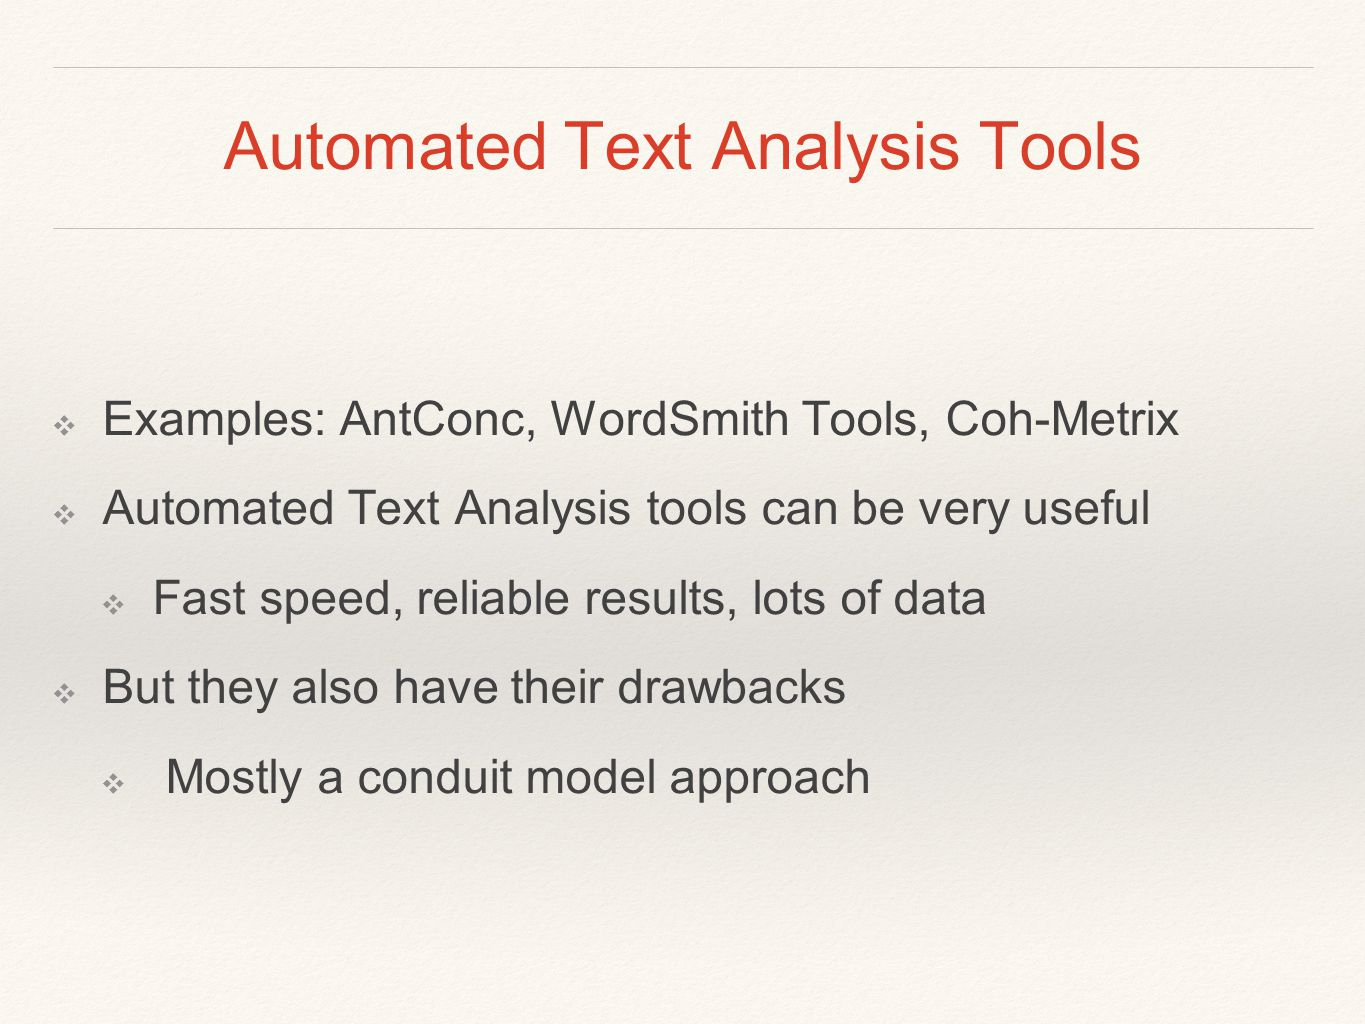 Automated Text Analysis Tools ❖ Examples: AntConc, WordSmith Tools, Coh-Metrix ❖ Automated Text Analysis tools can be very useful ❖ Fast speed, reliab